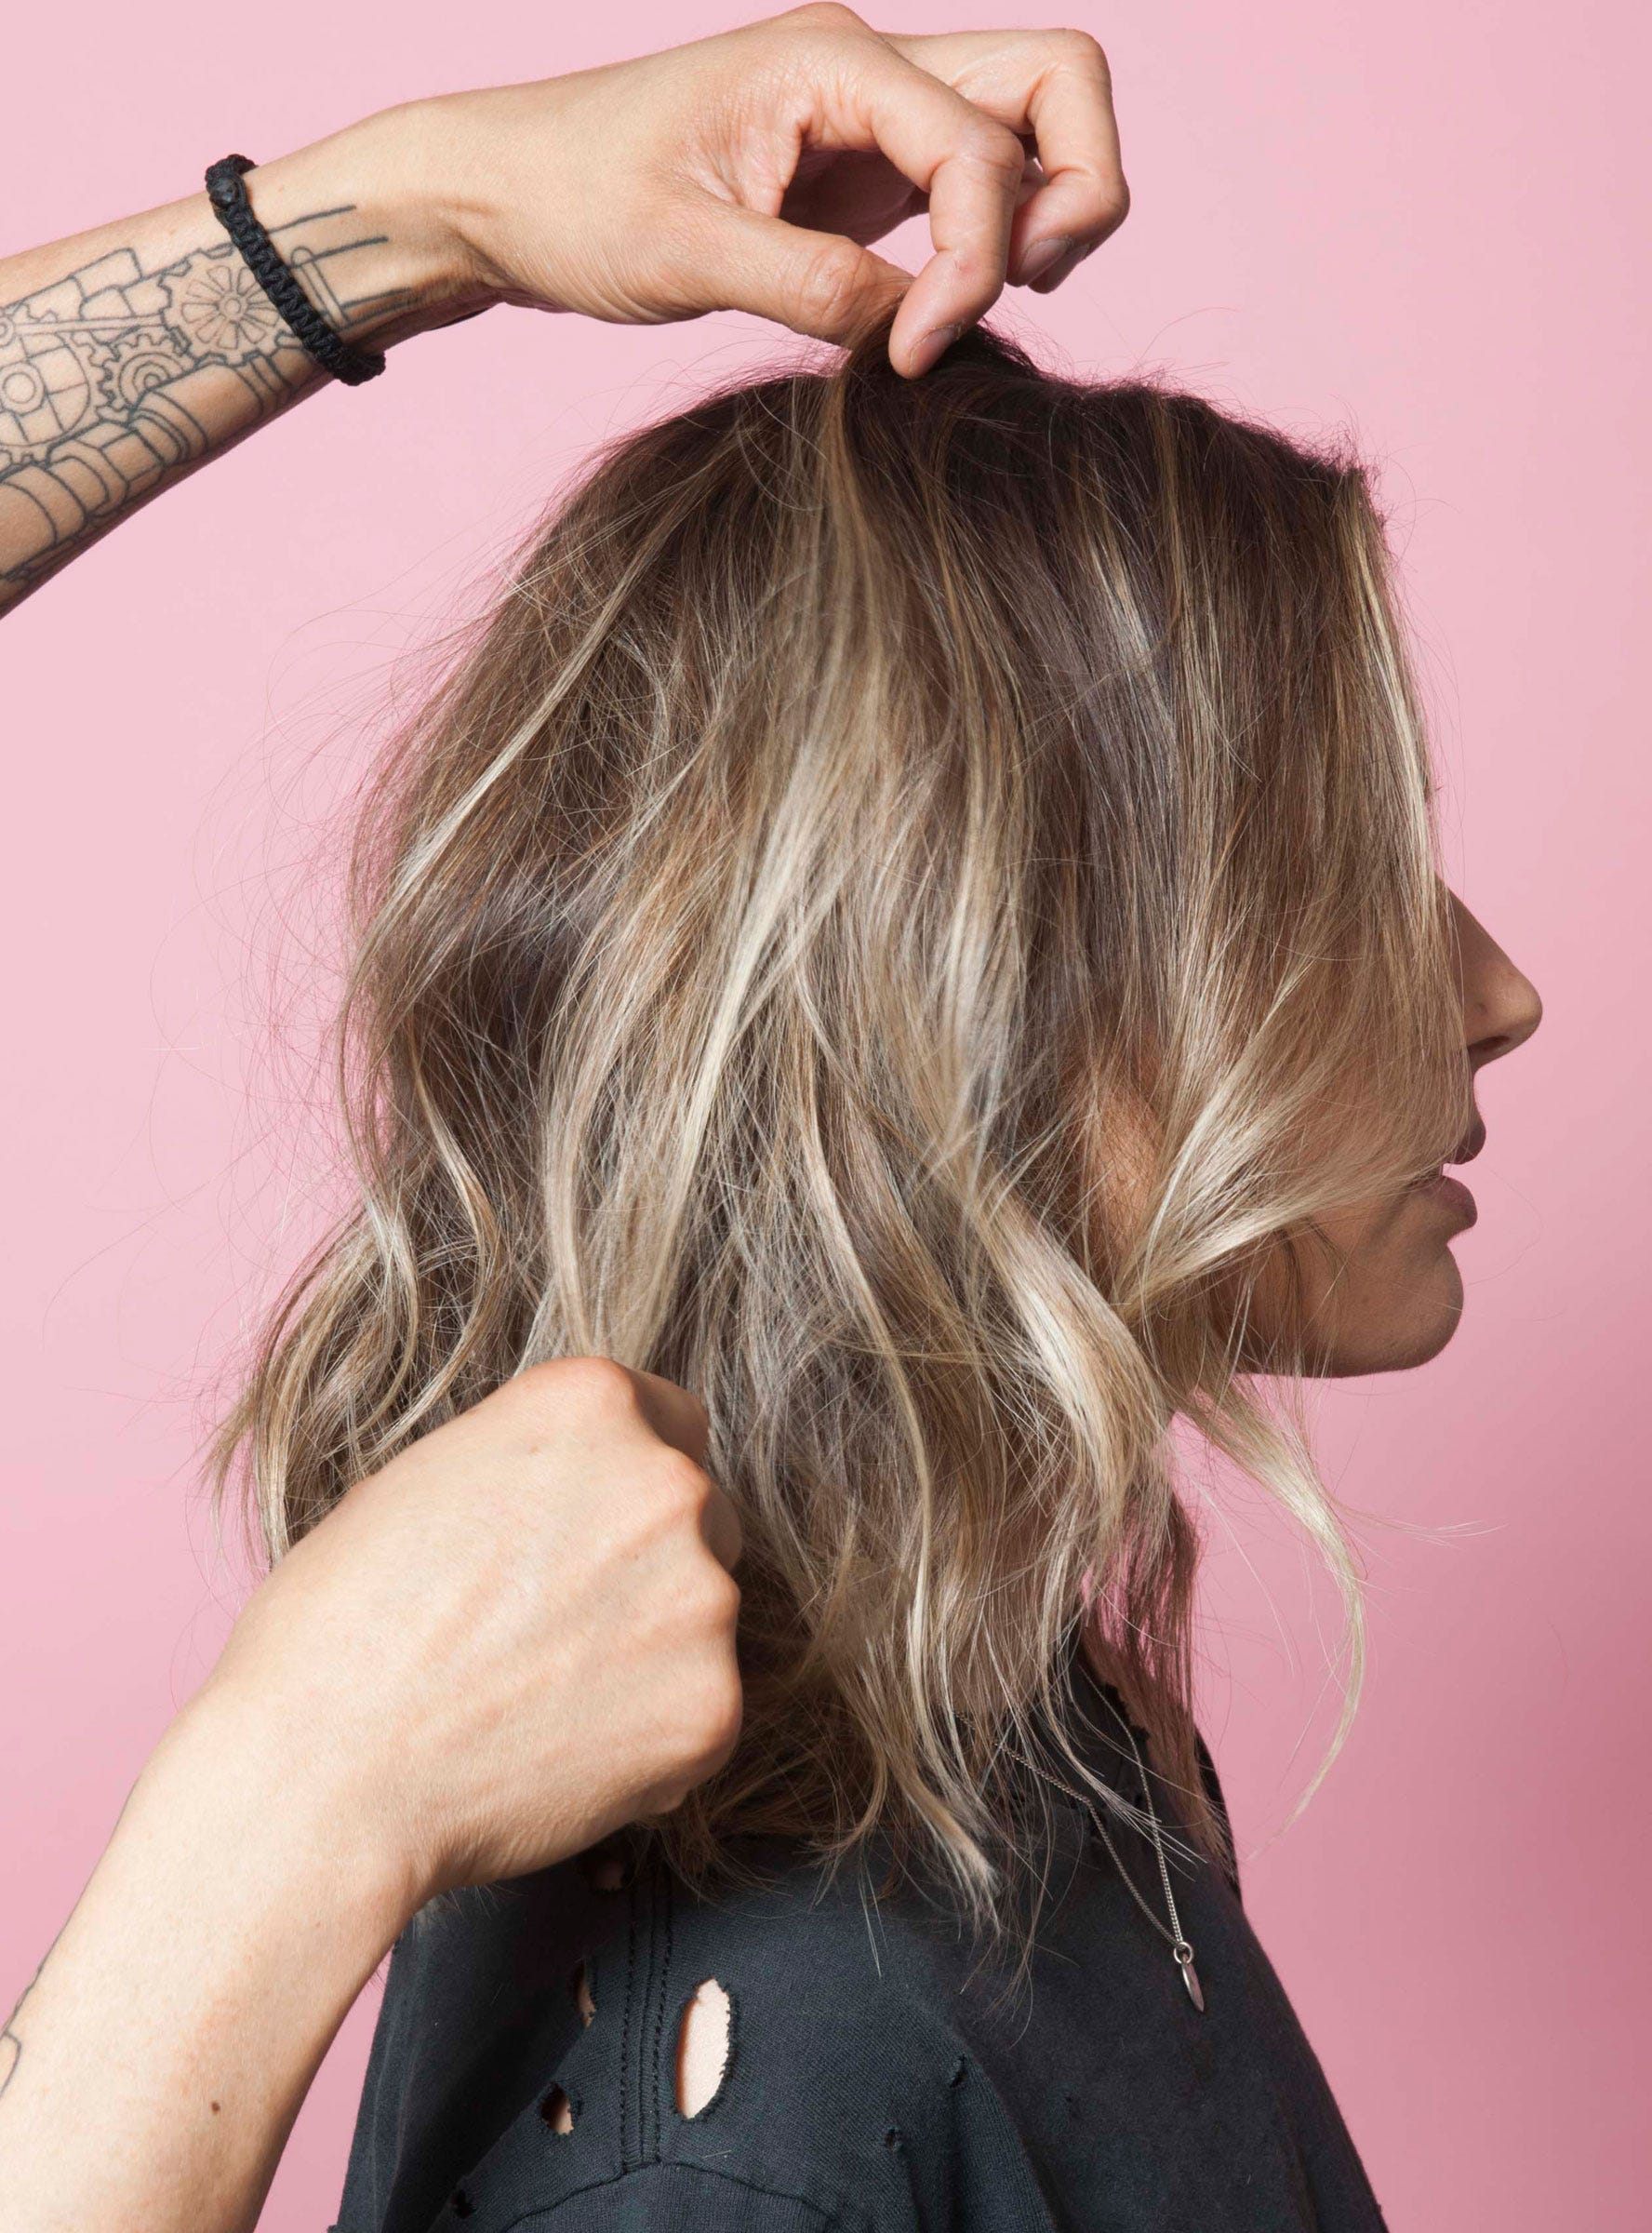 How To Get Wavy Hair - Anh Co Tran Easy Wave Technique